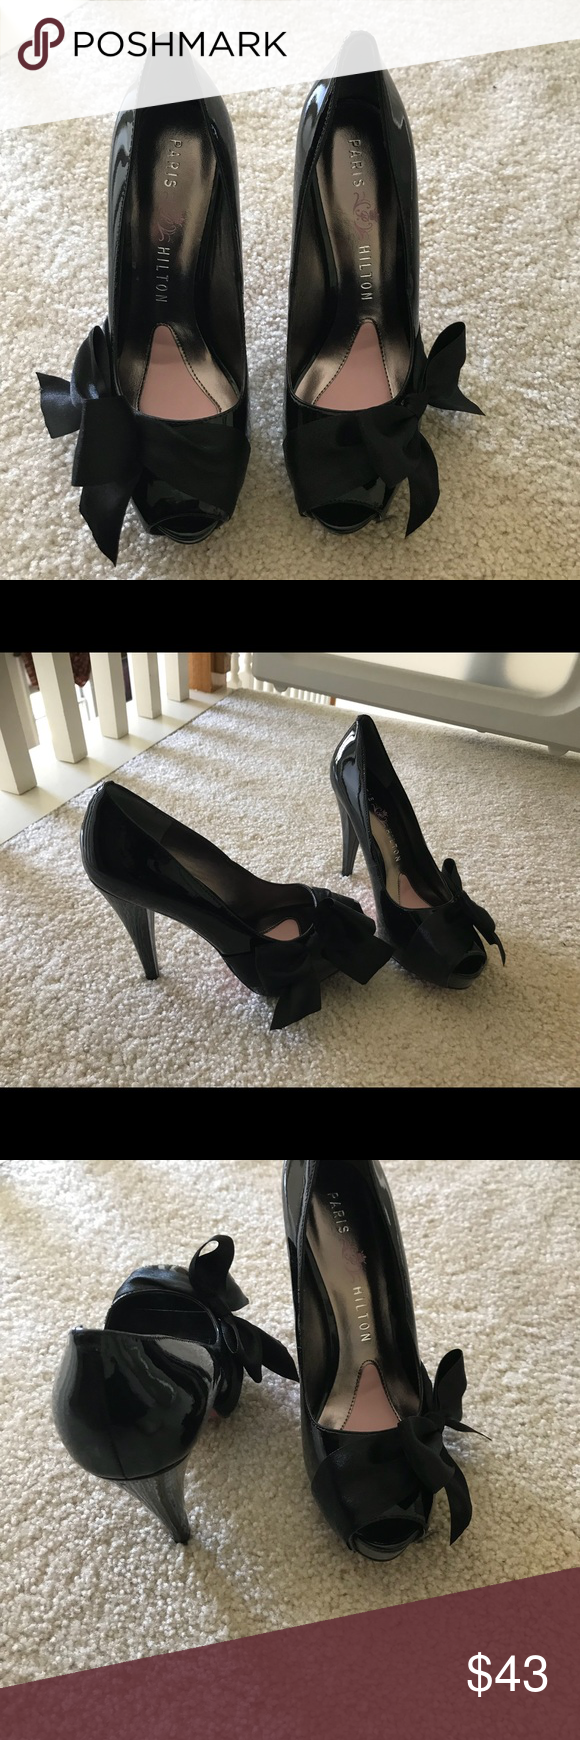 Paris Hilton Black Patent Heels with Bow Great for a